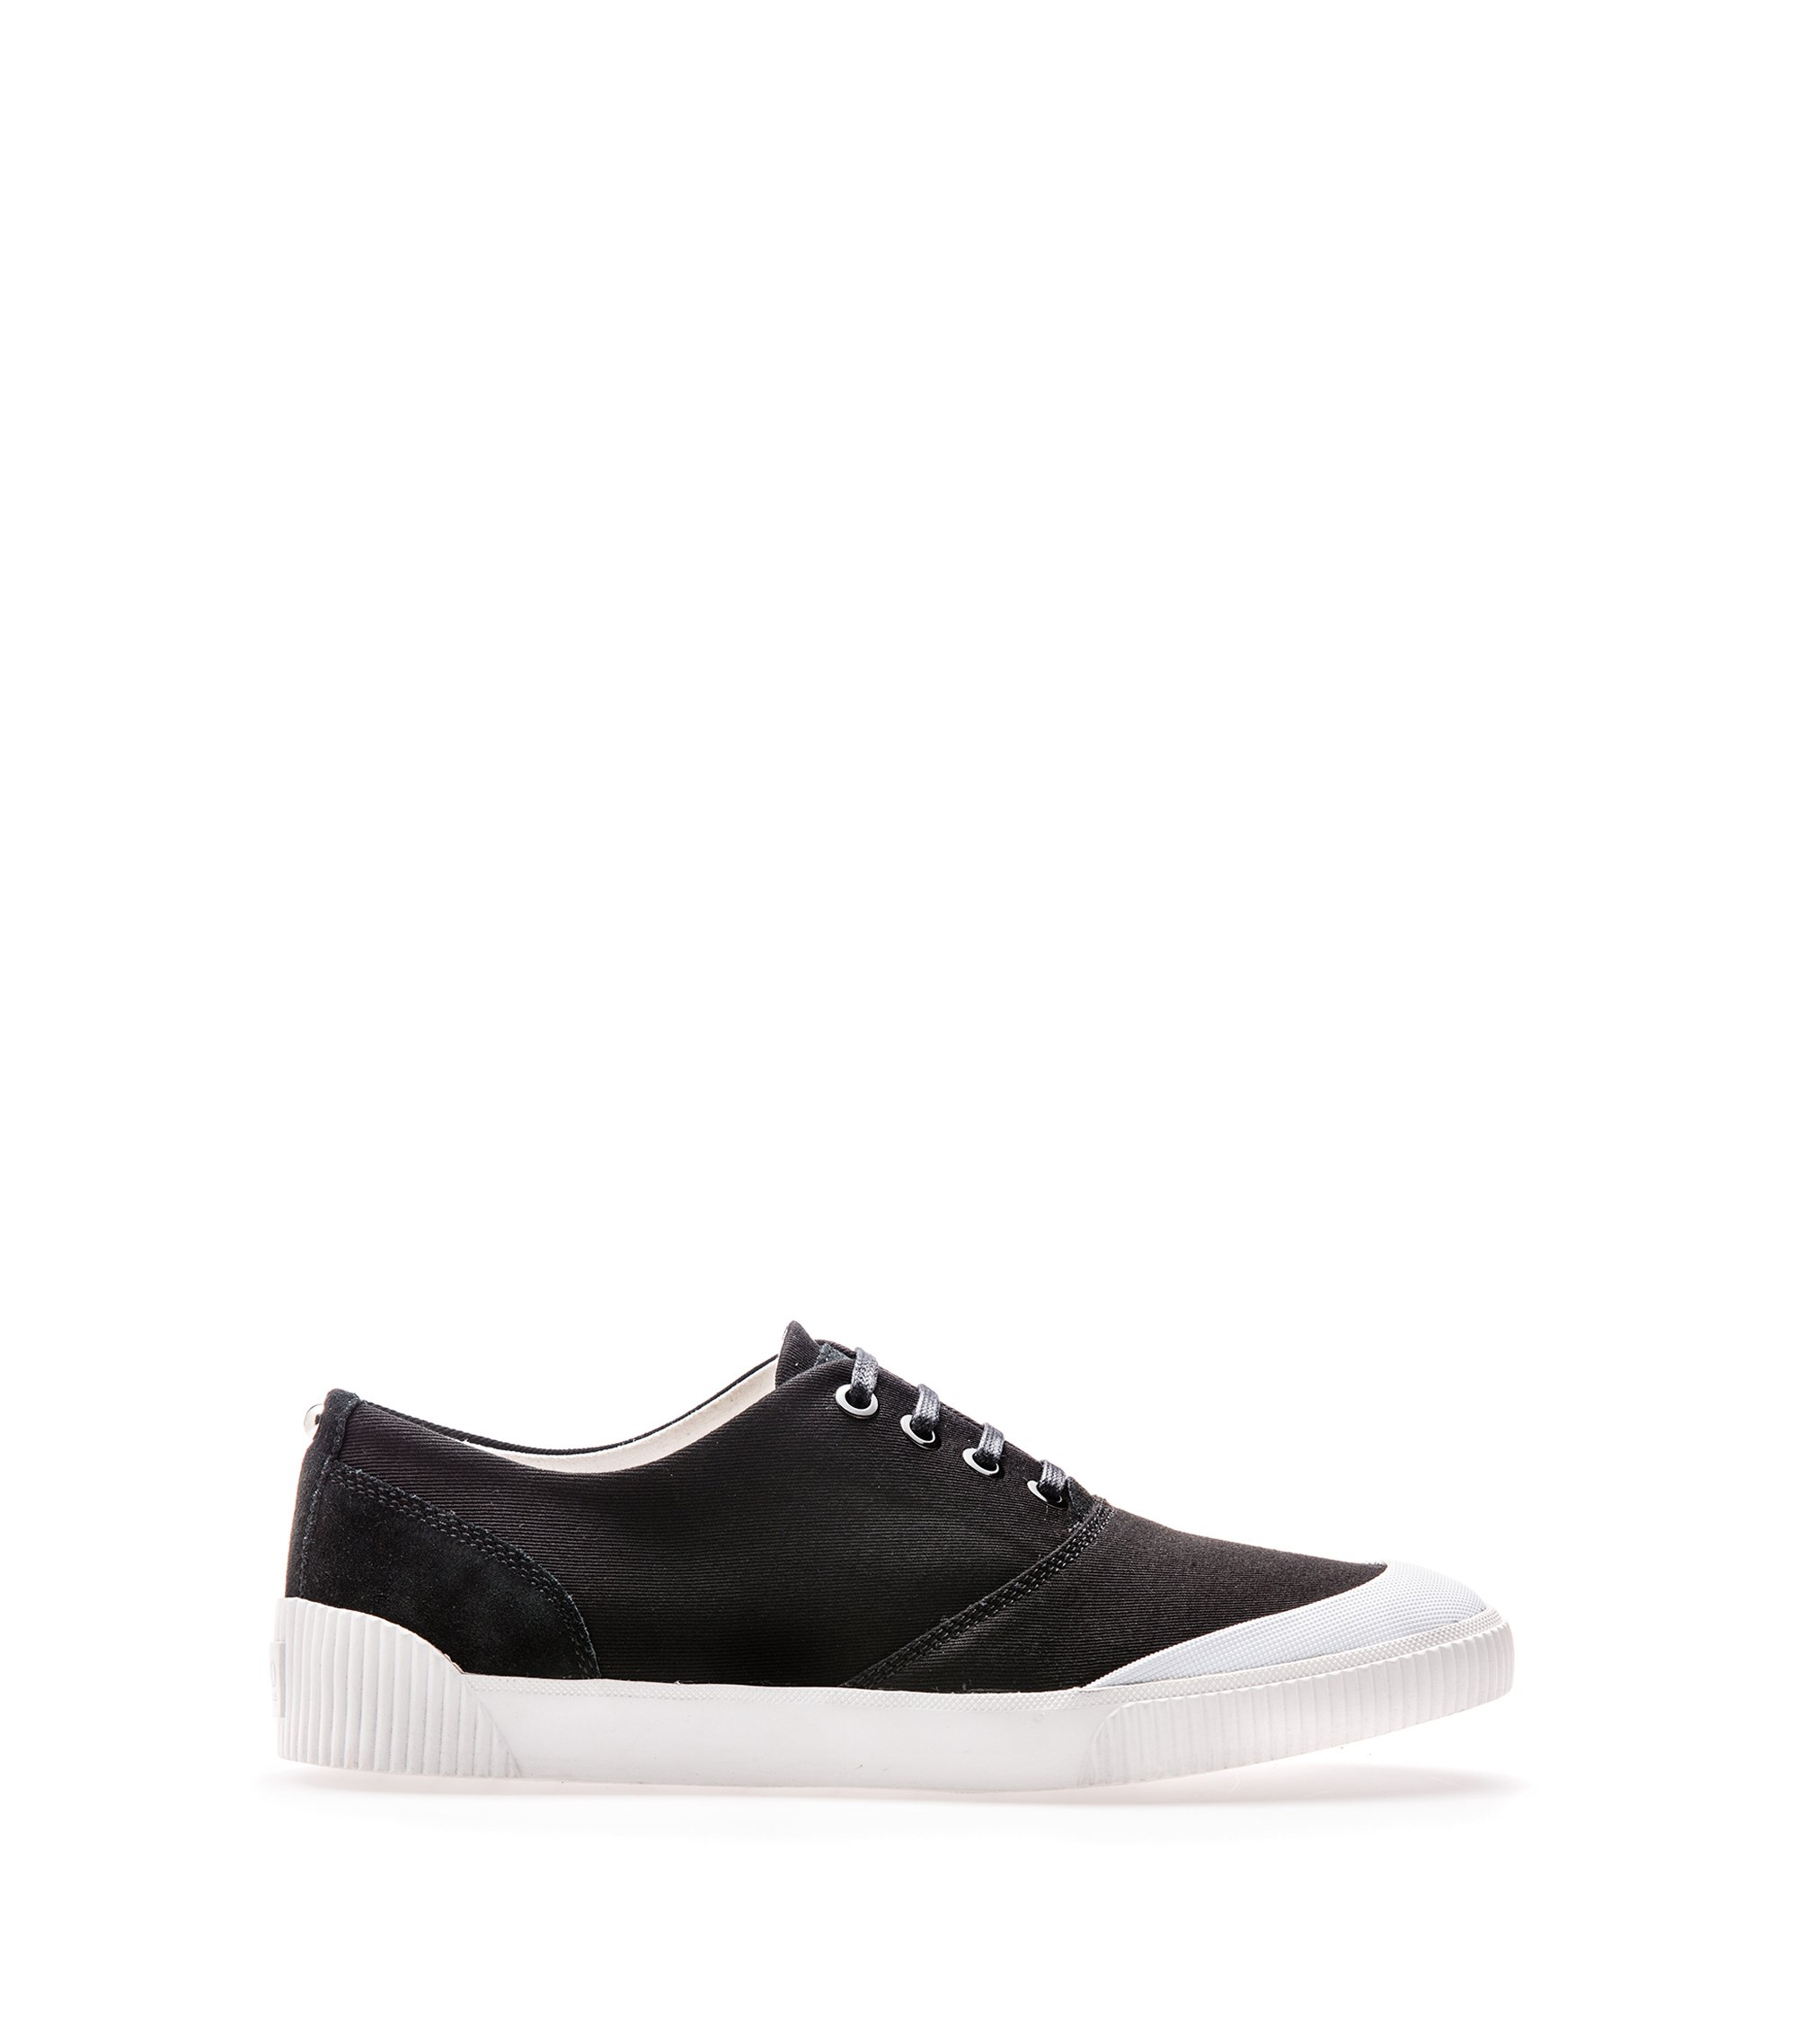 Sneakers low-top in pelle e tela realizzate in Italia, Nero